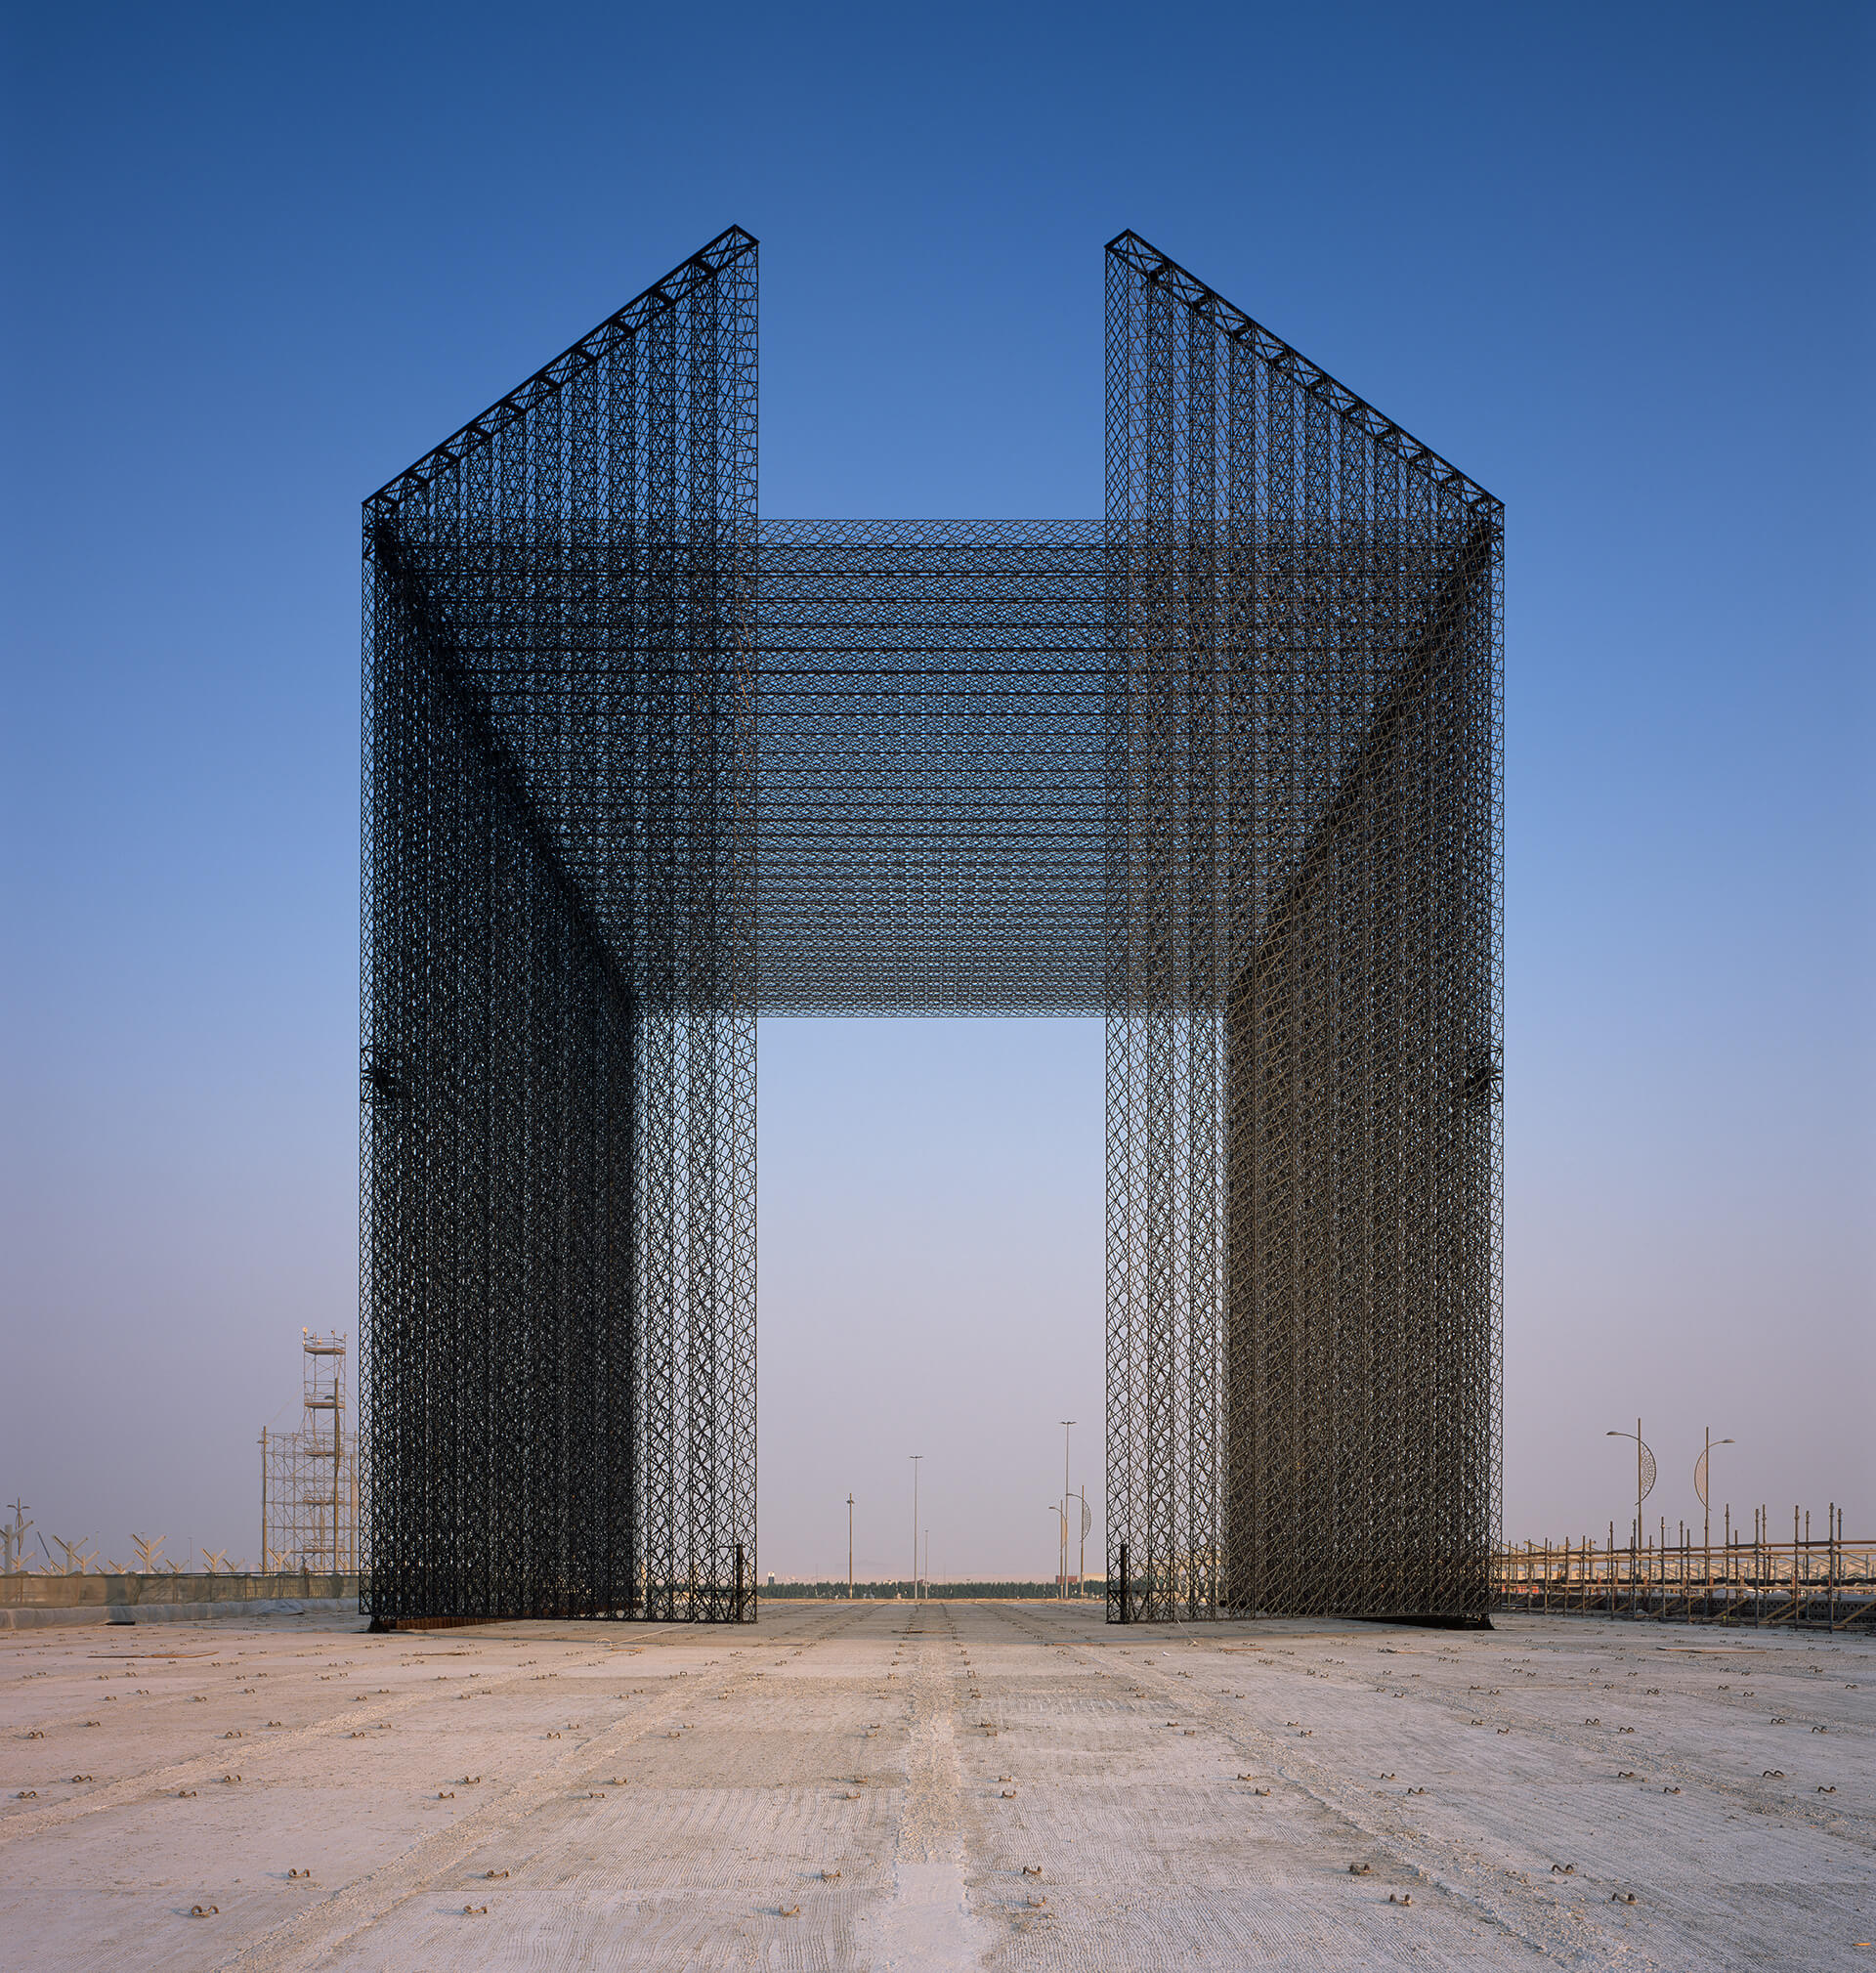 The portal symbolises moving away from the past into the future | Entry Portals | Expo 2020 Dubai| Asif Khan | STIRworld